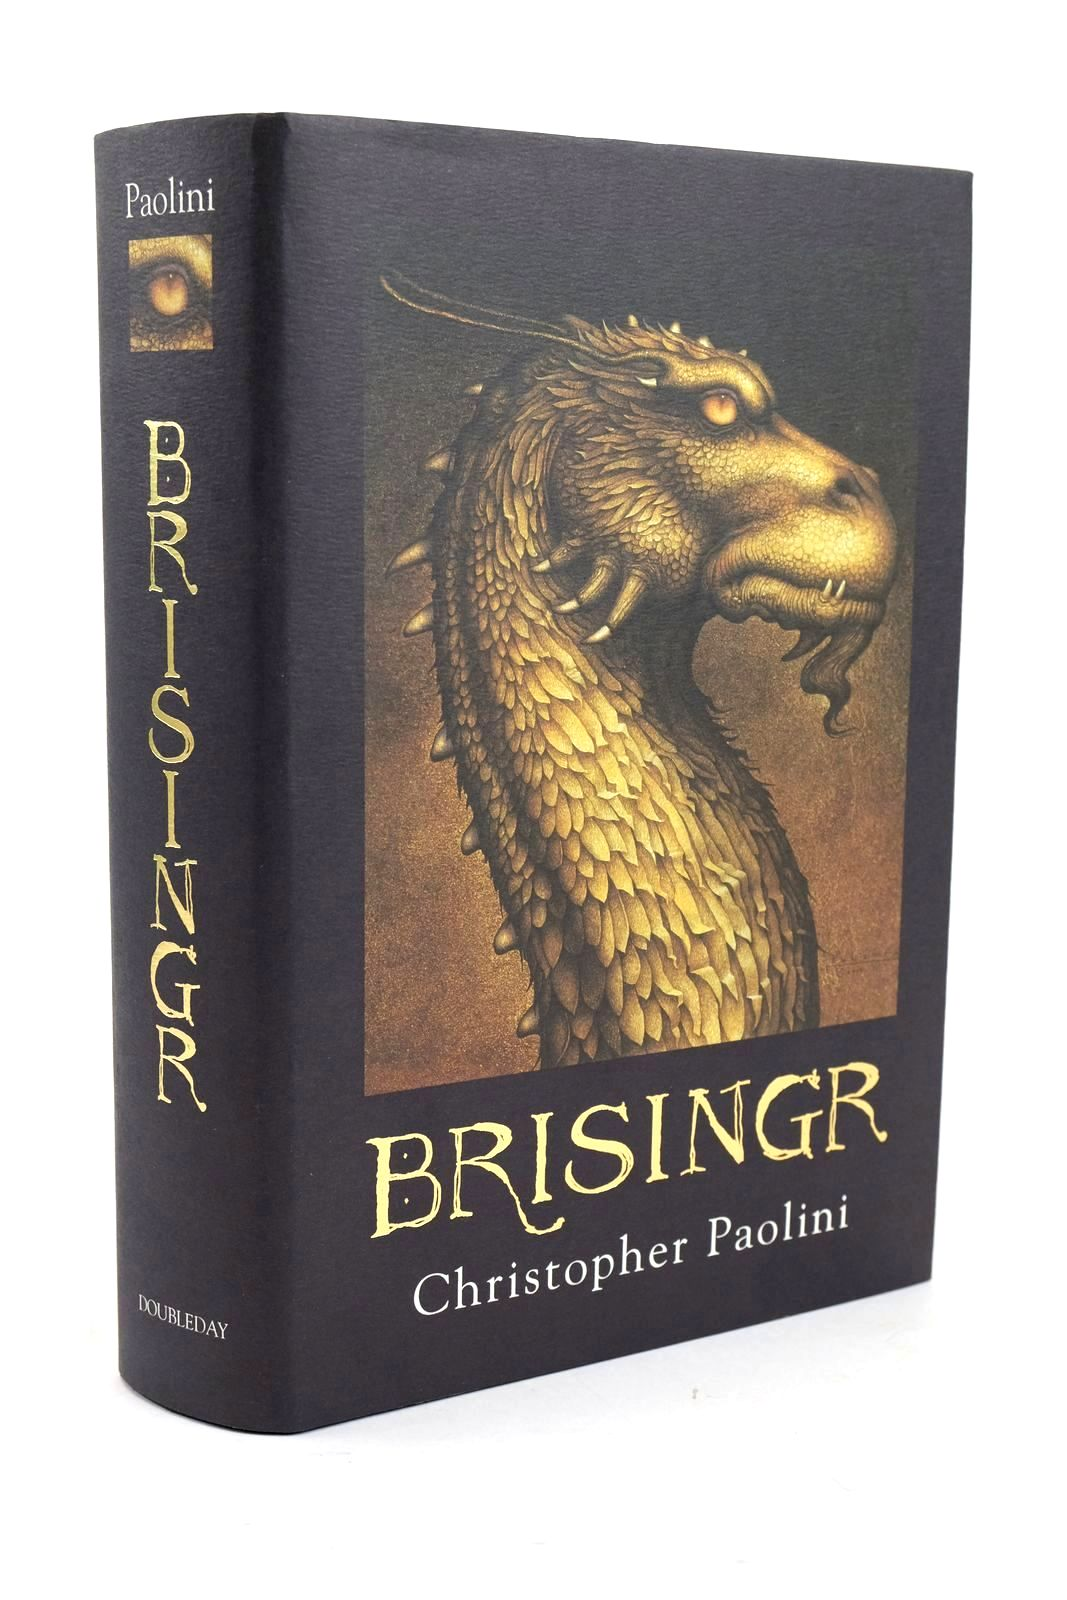 Photo of BRISINGR written by Paolini, Christopher published by Doubleday (STOCK CODE: 1319395)  for sale by Stella & Rose's Books